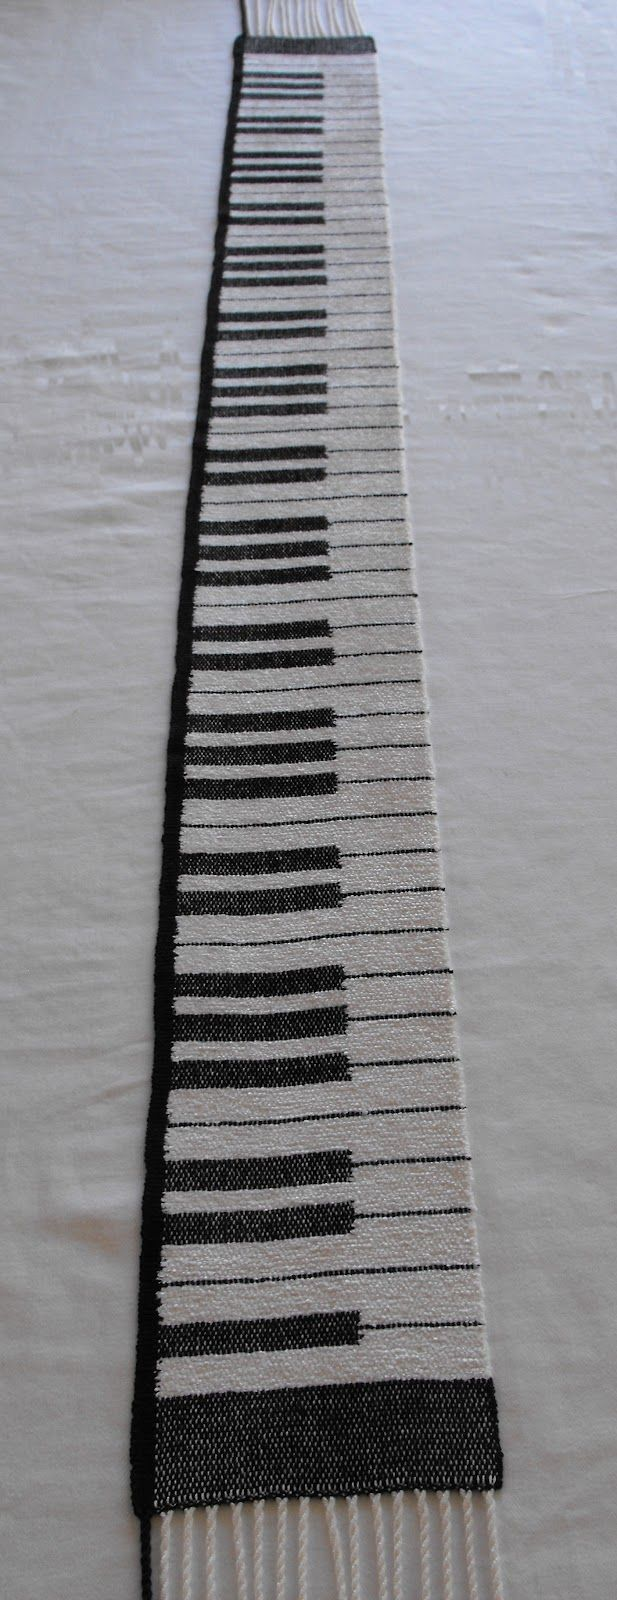 I thought that the piano scarf would be a great addition to our Esty store, Woven Beauty .  Esty is about unique handmade items and this pia...